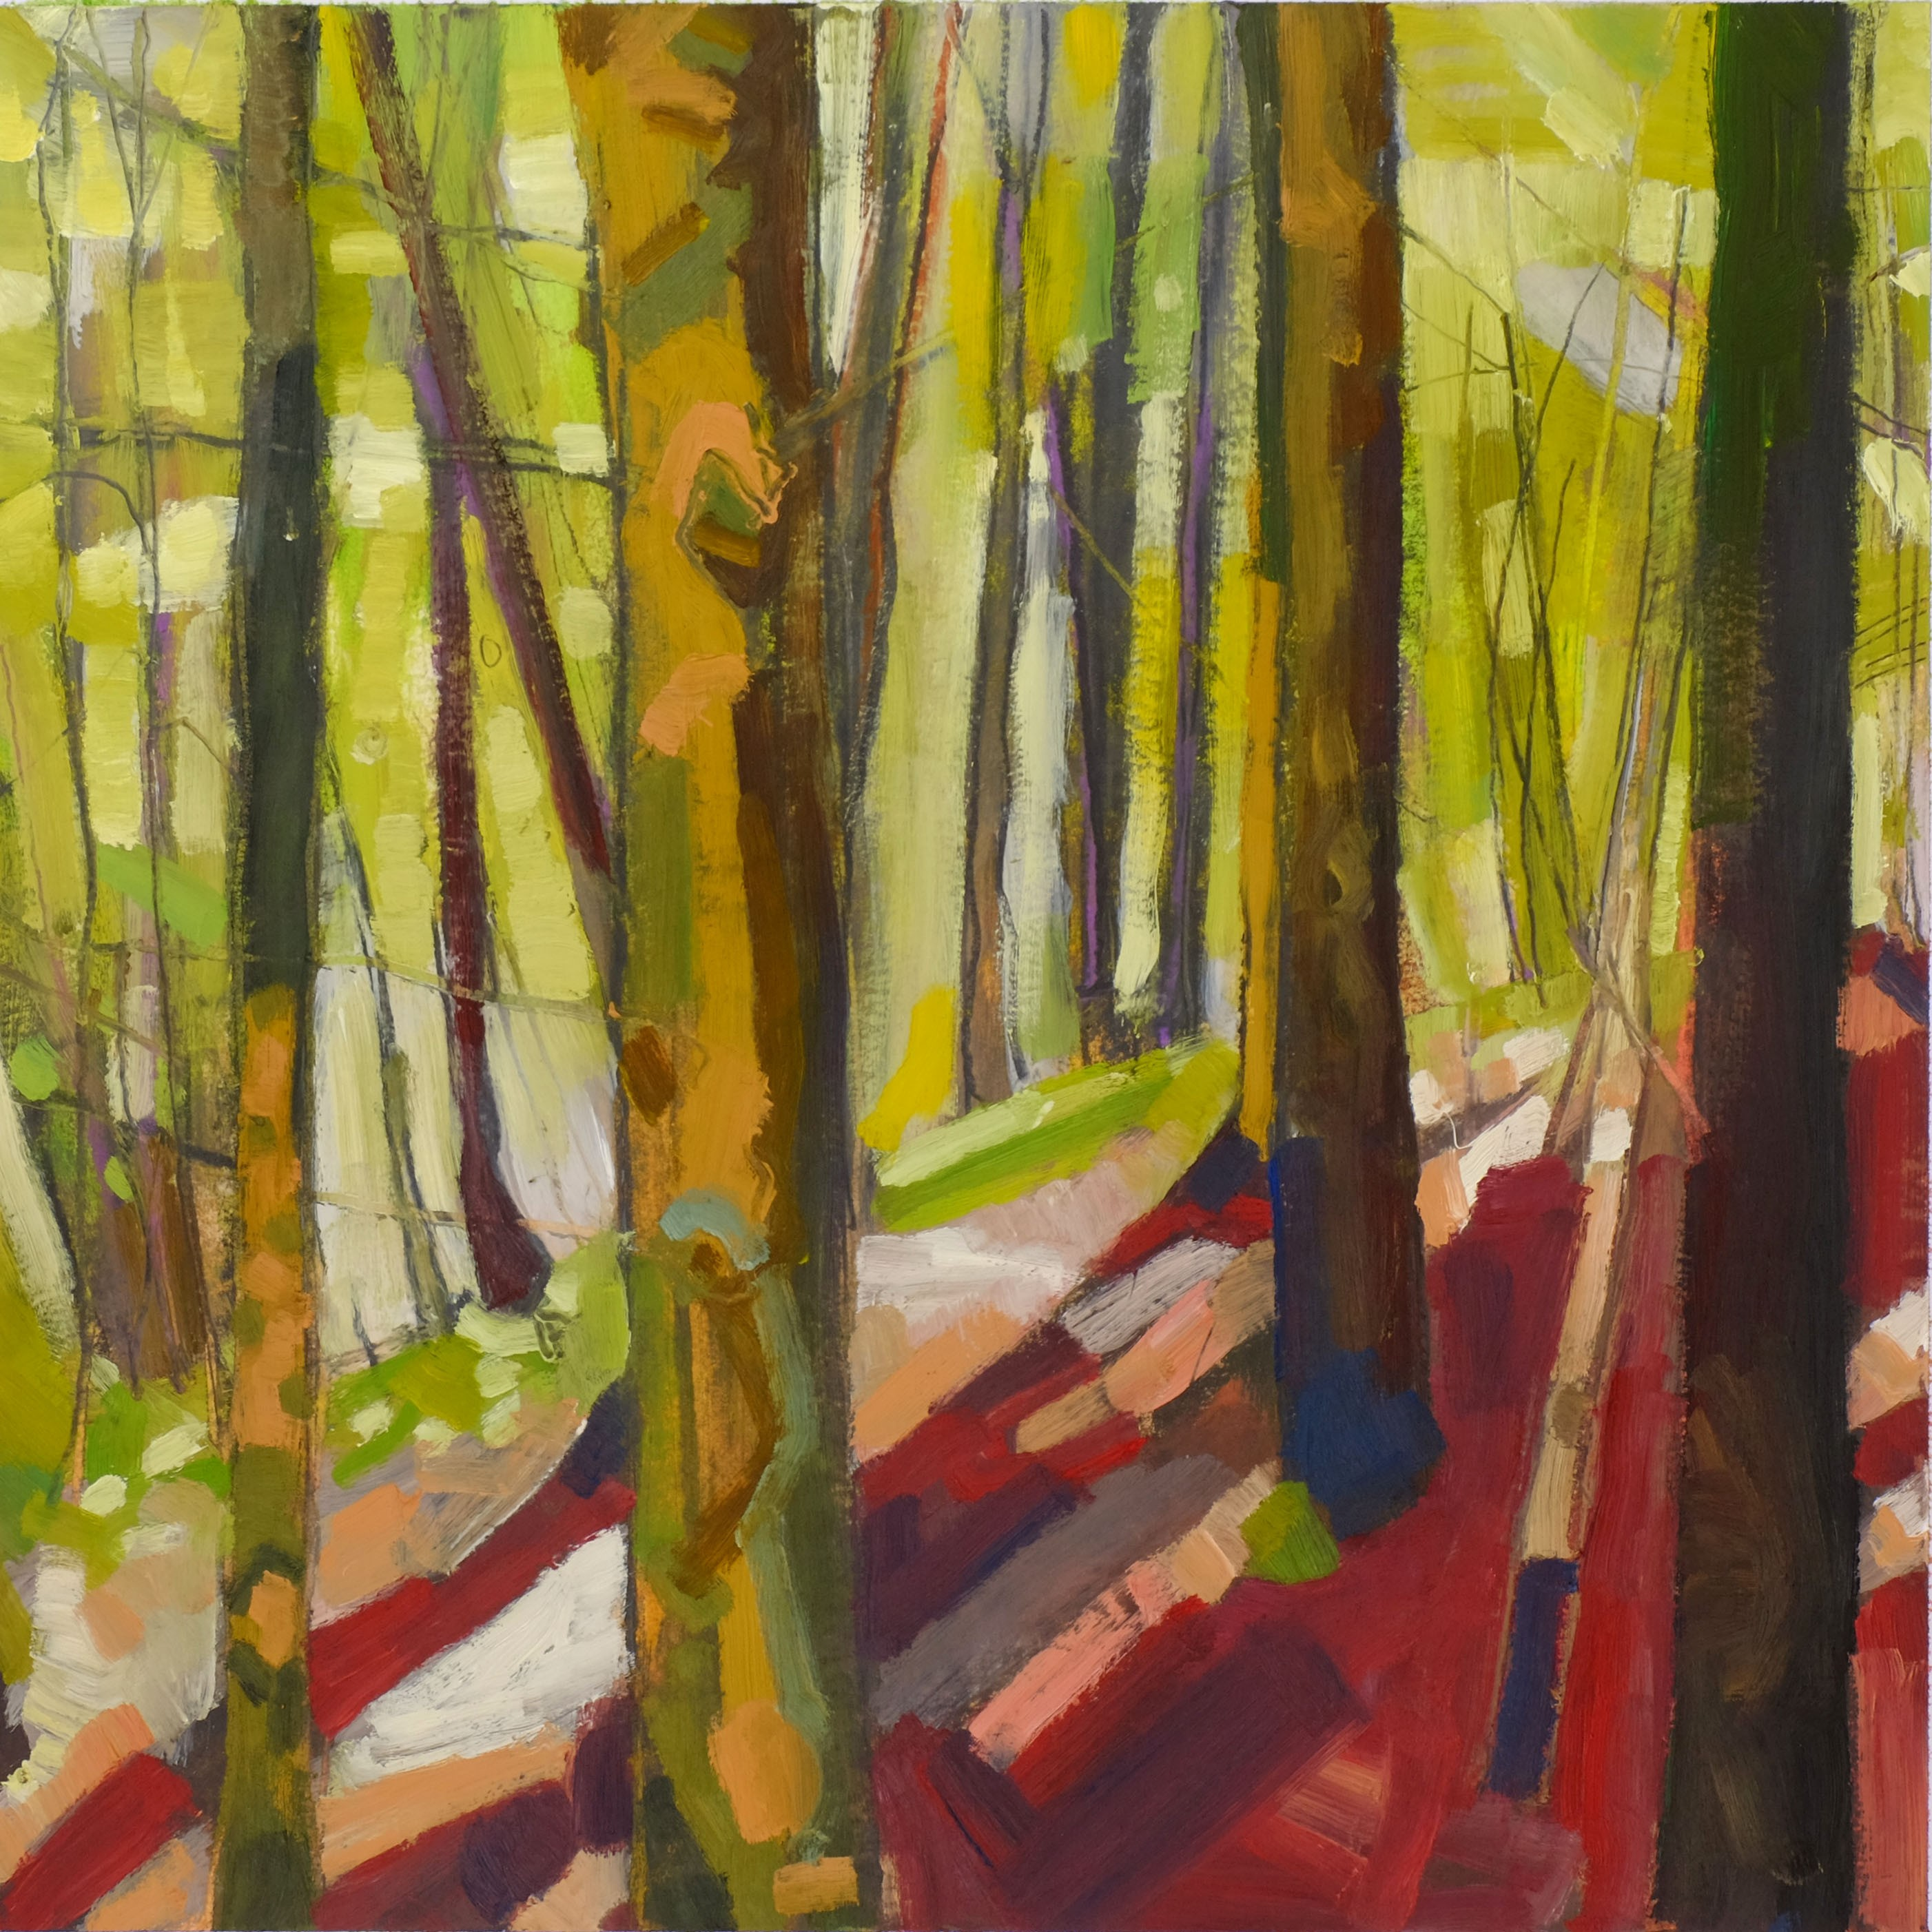 Woodland Study No 28 January 2019 30x30 Oil on paper